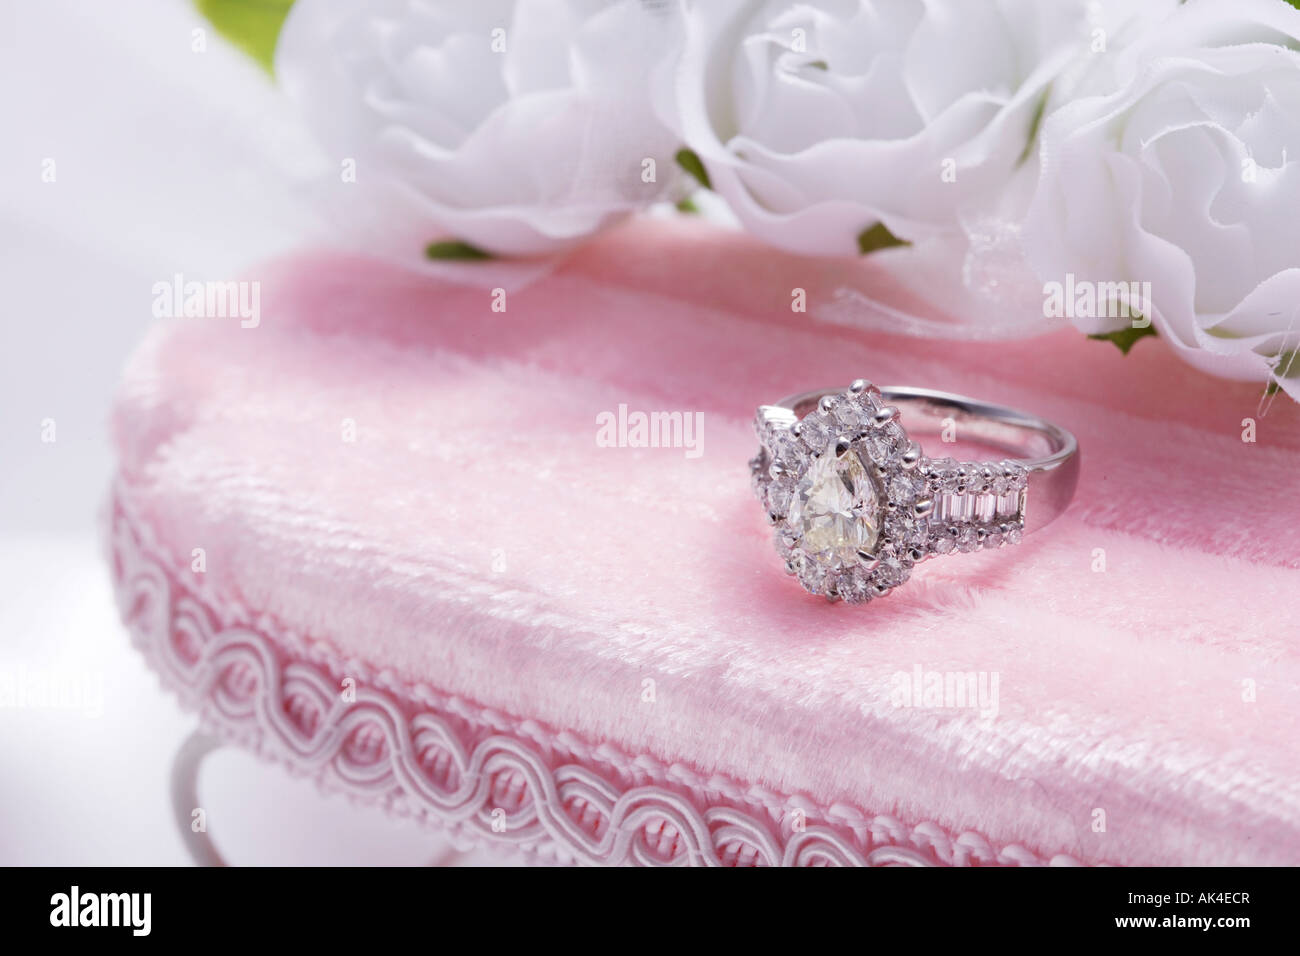 Cushion Diamond Stock Photos & Cushion Diamond Stock Images - Alamy